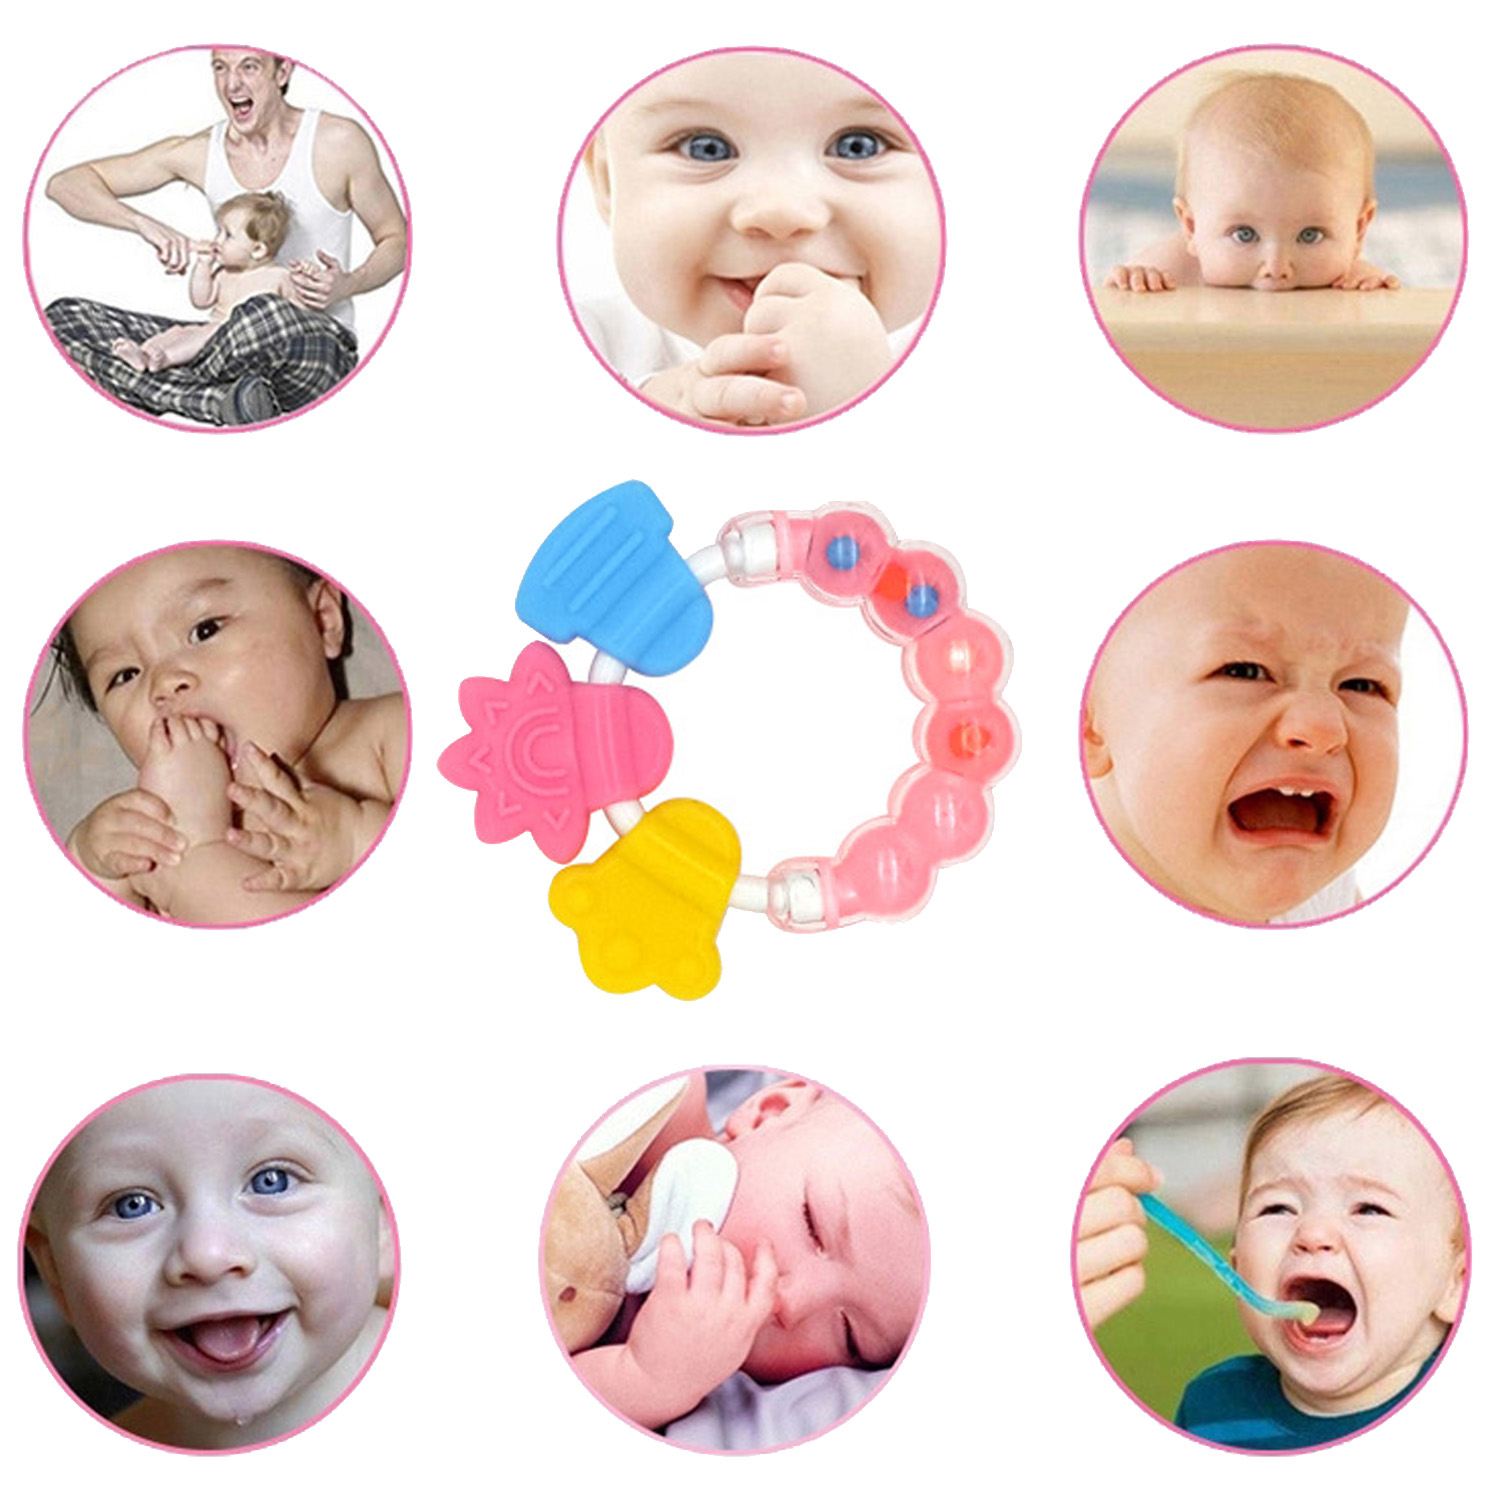 Baby Safe Cartoon Silicone Teether Toys Chew Teething Ring Handbell Jingle Educational Grip Molar Spin Rattle&Mobiles Toy